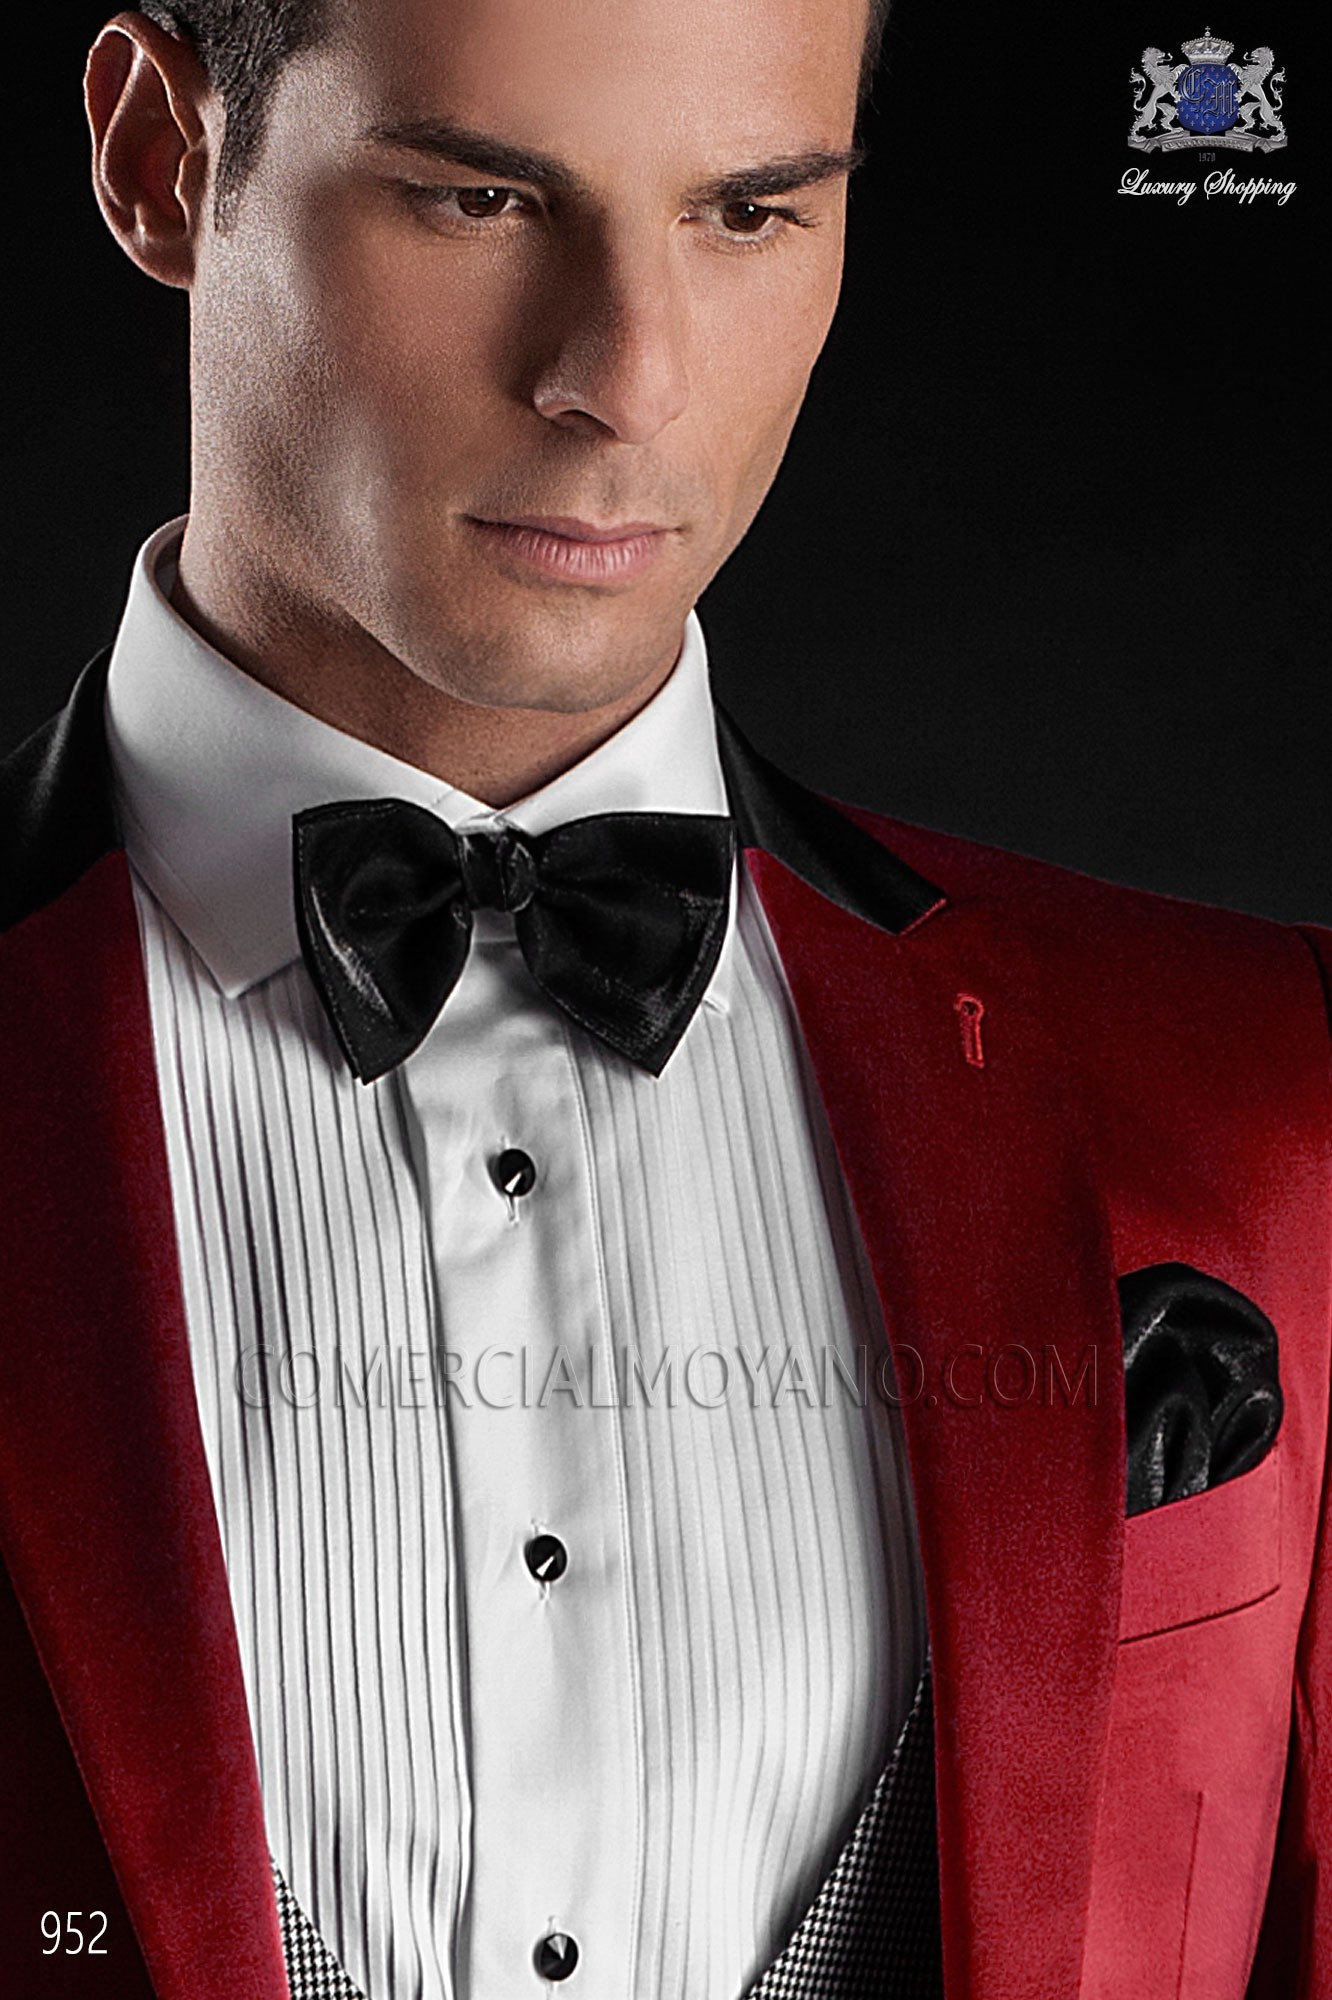 Italian Blacktie Red Men Wedding Suit Model 952 Ottavio Nuccio Gala 2017 Black Tie